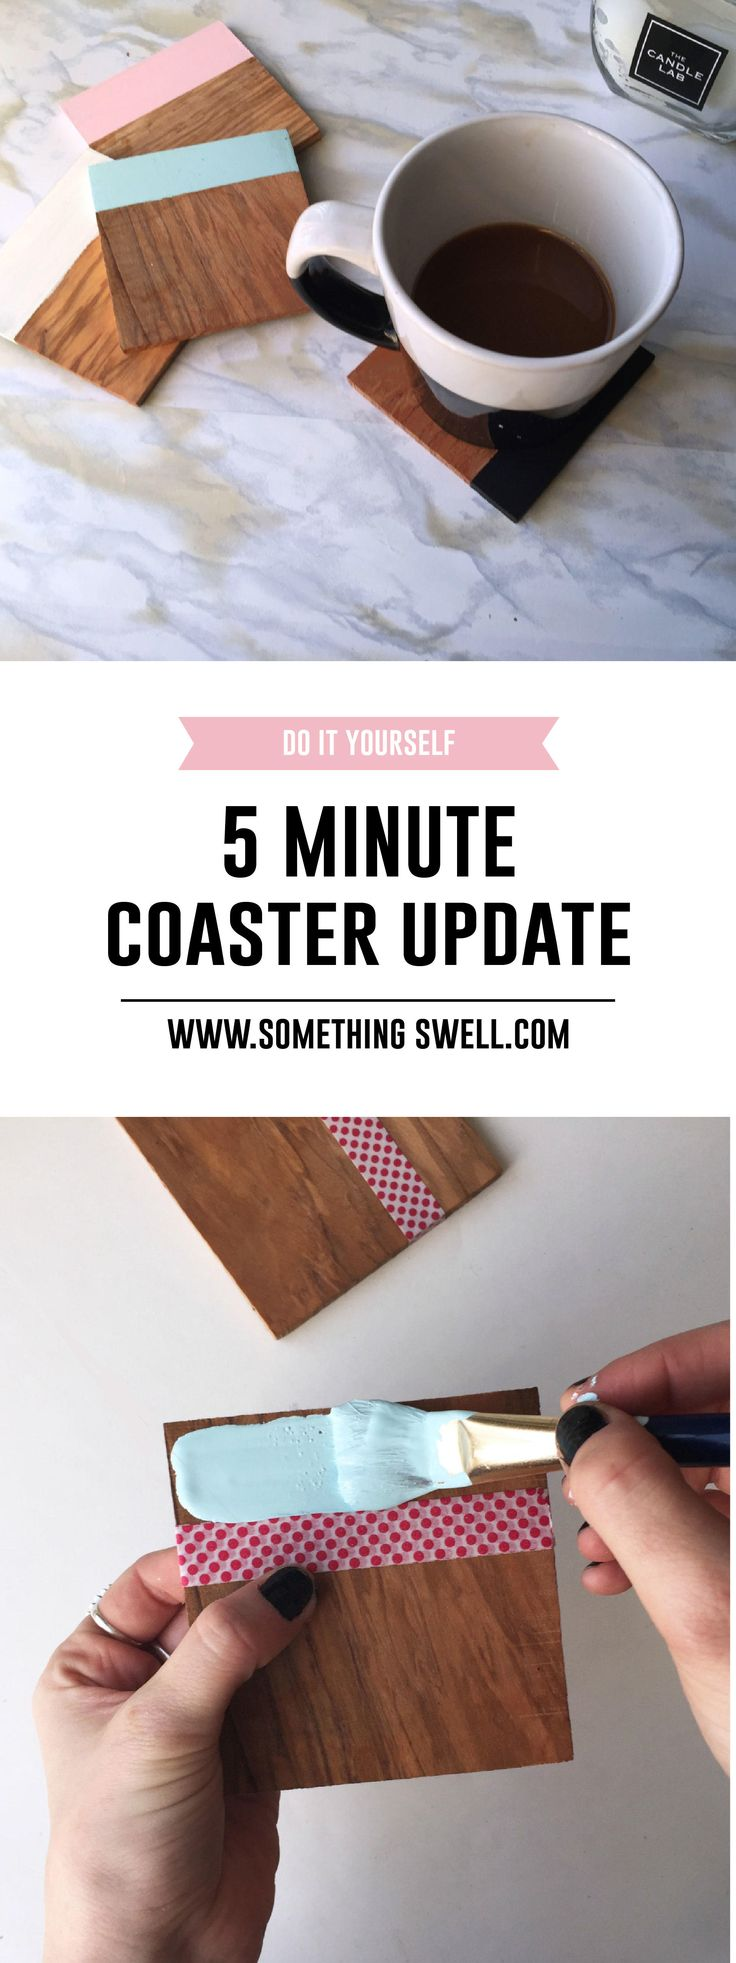 Five MInute Coaster Update // Want to spruce up your boring old coasters but…